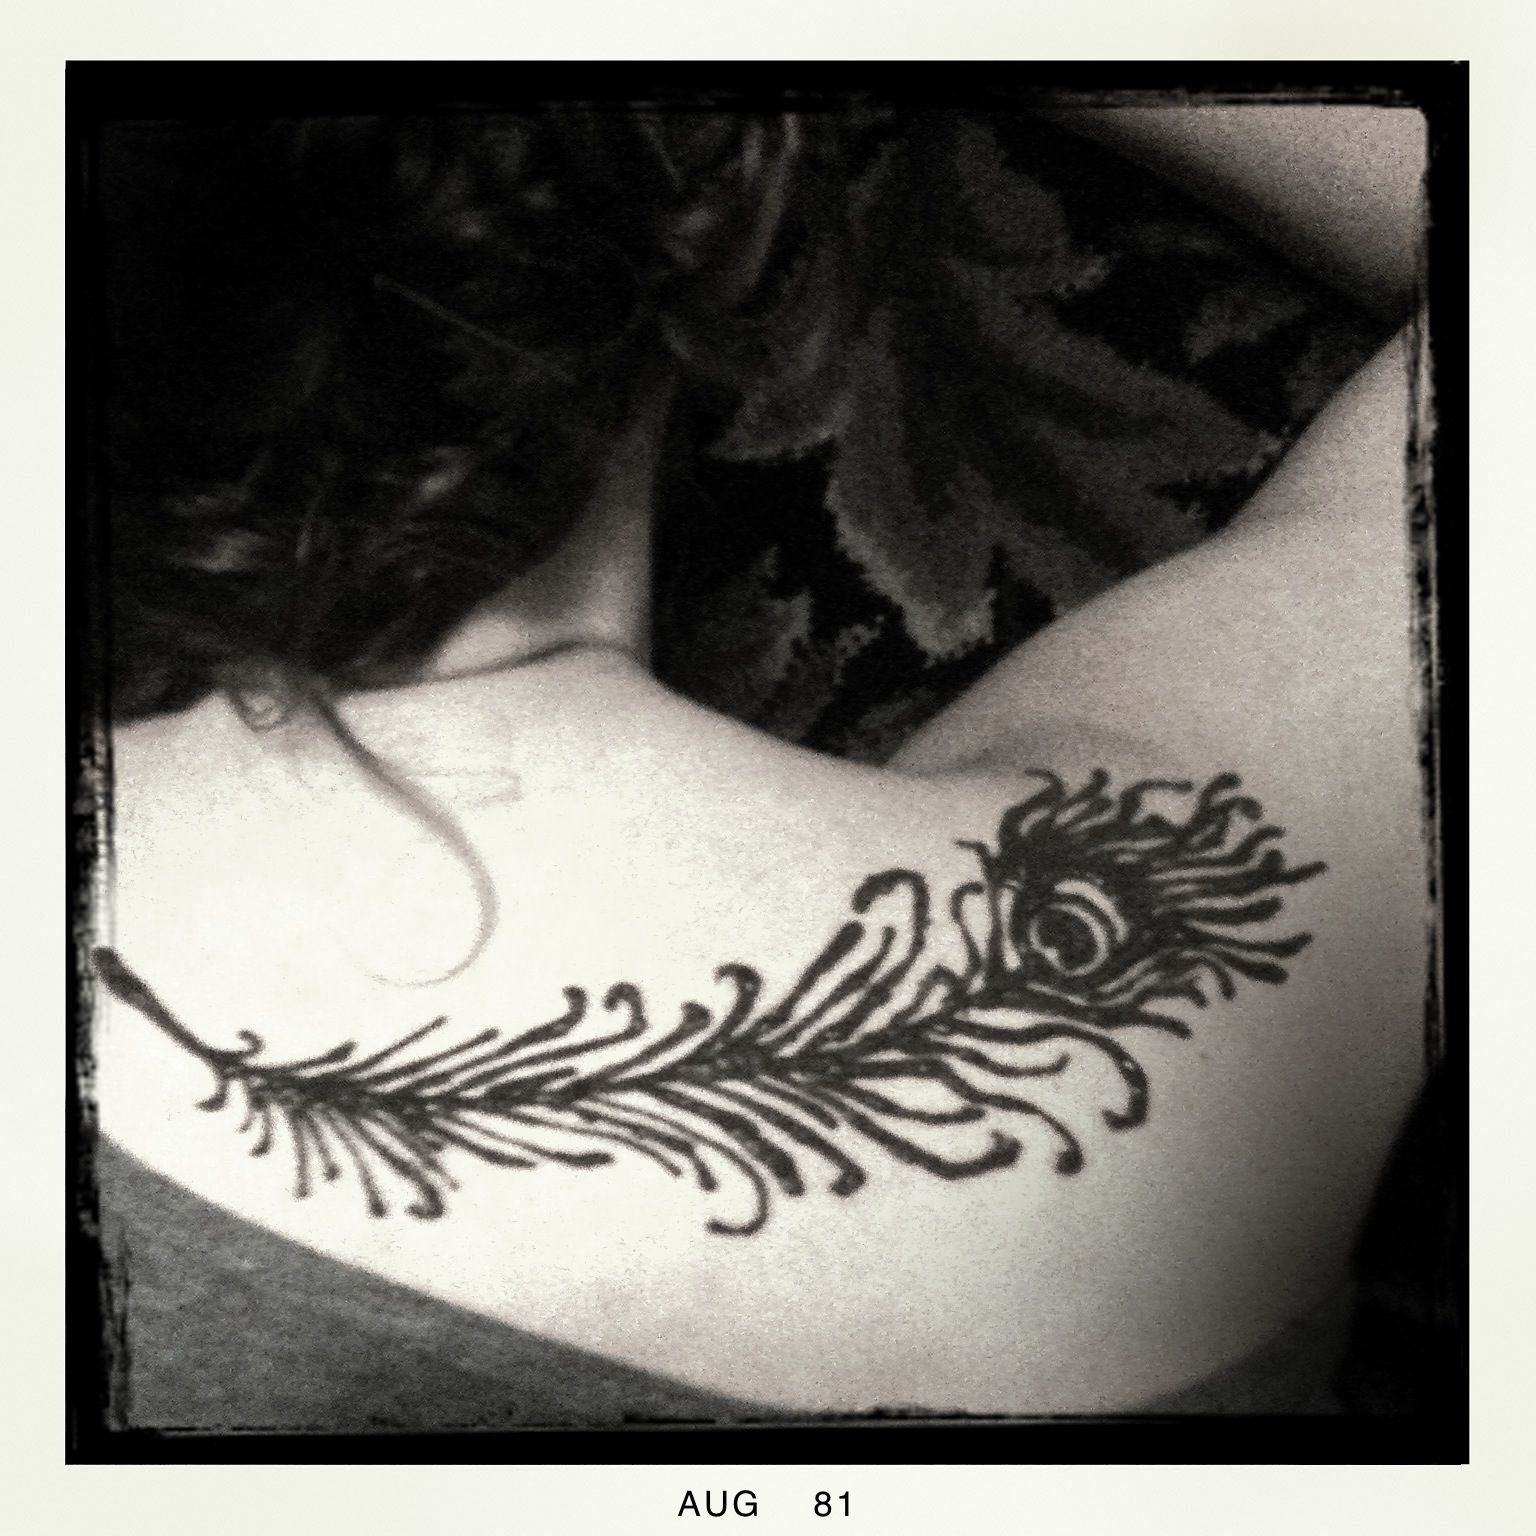 Henna Peacock Tattoo Lower Back: Peacock Feather Across Upper Back. Looks Really Cool